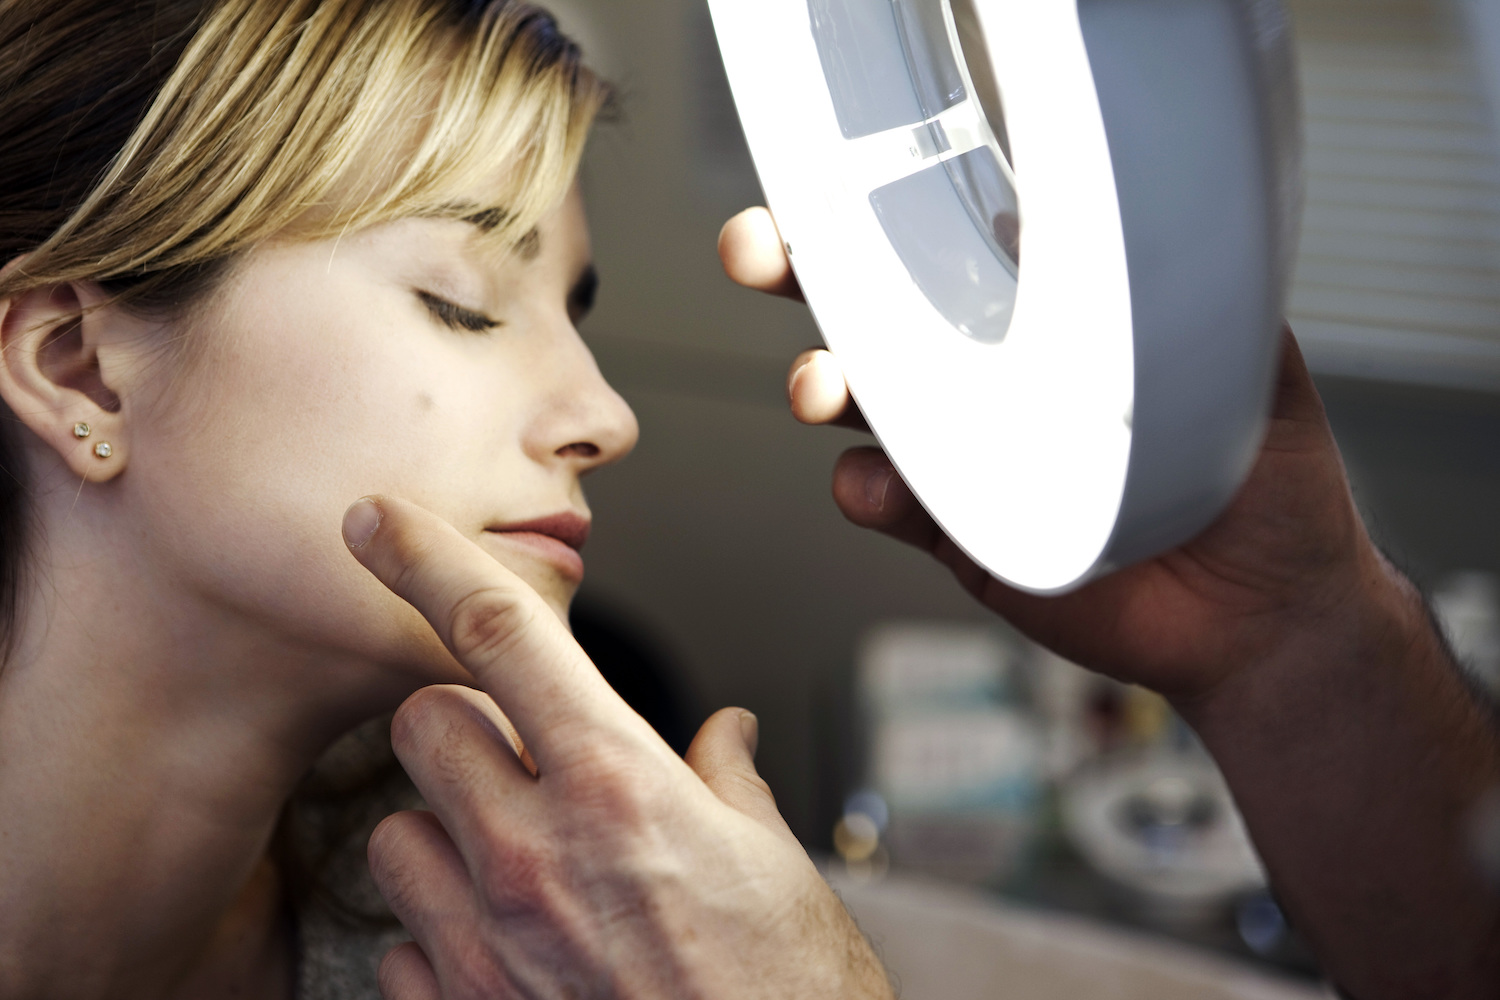 A Young Woman at the Dermatologist